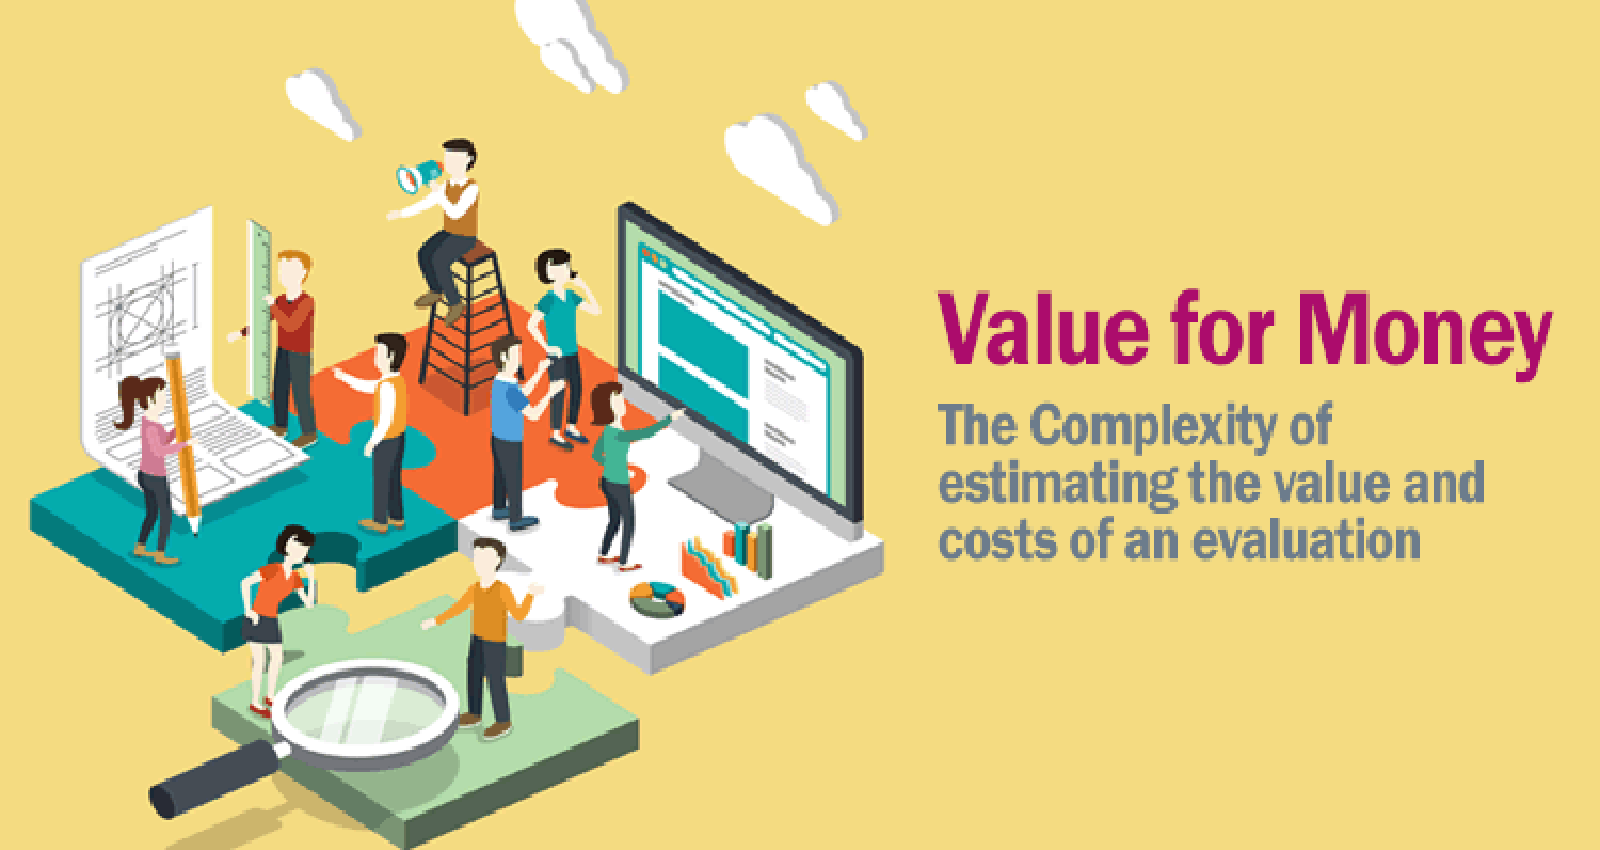 The Complexity of estimating the value and costs of an evaluation